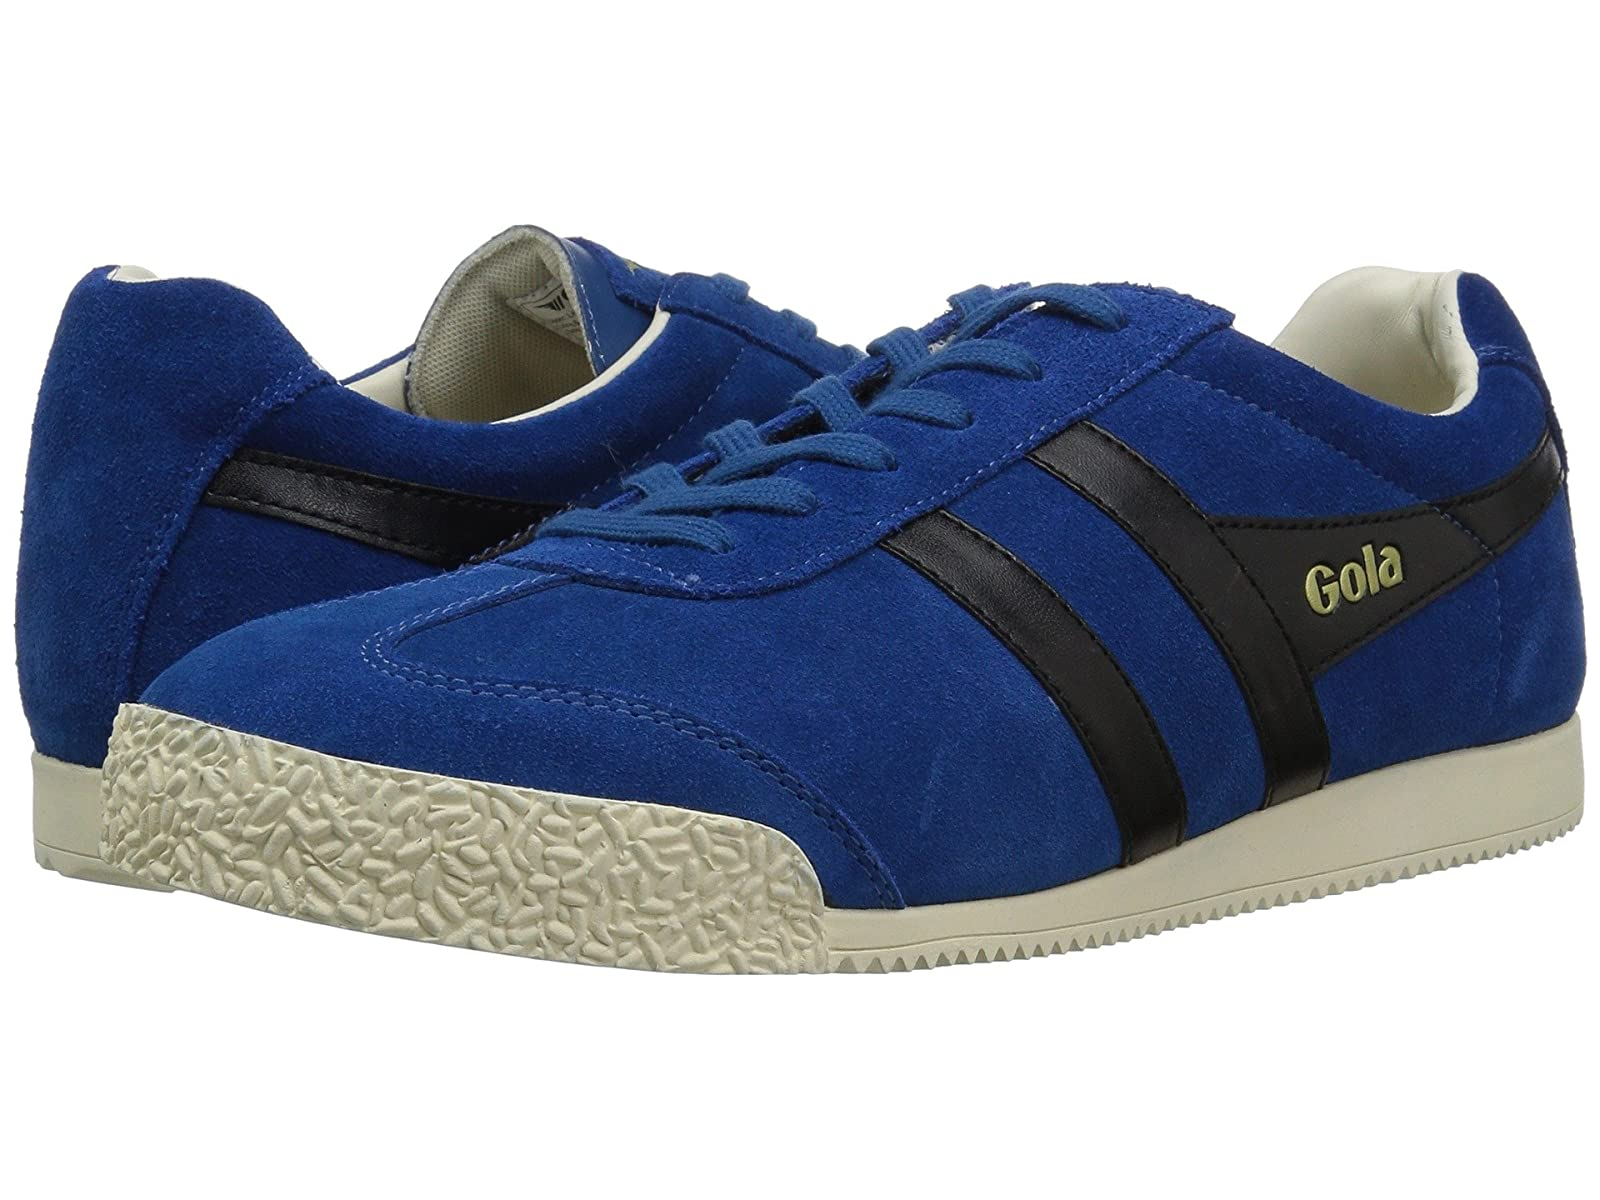 Gola HarrierCheap and distinctive eye-catching shoes